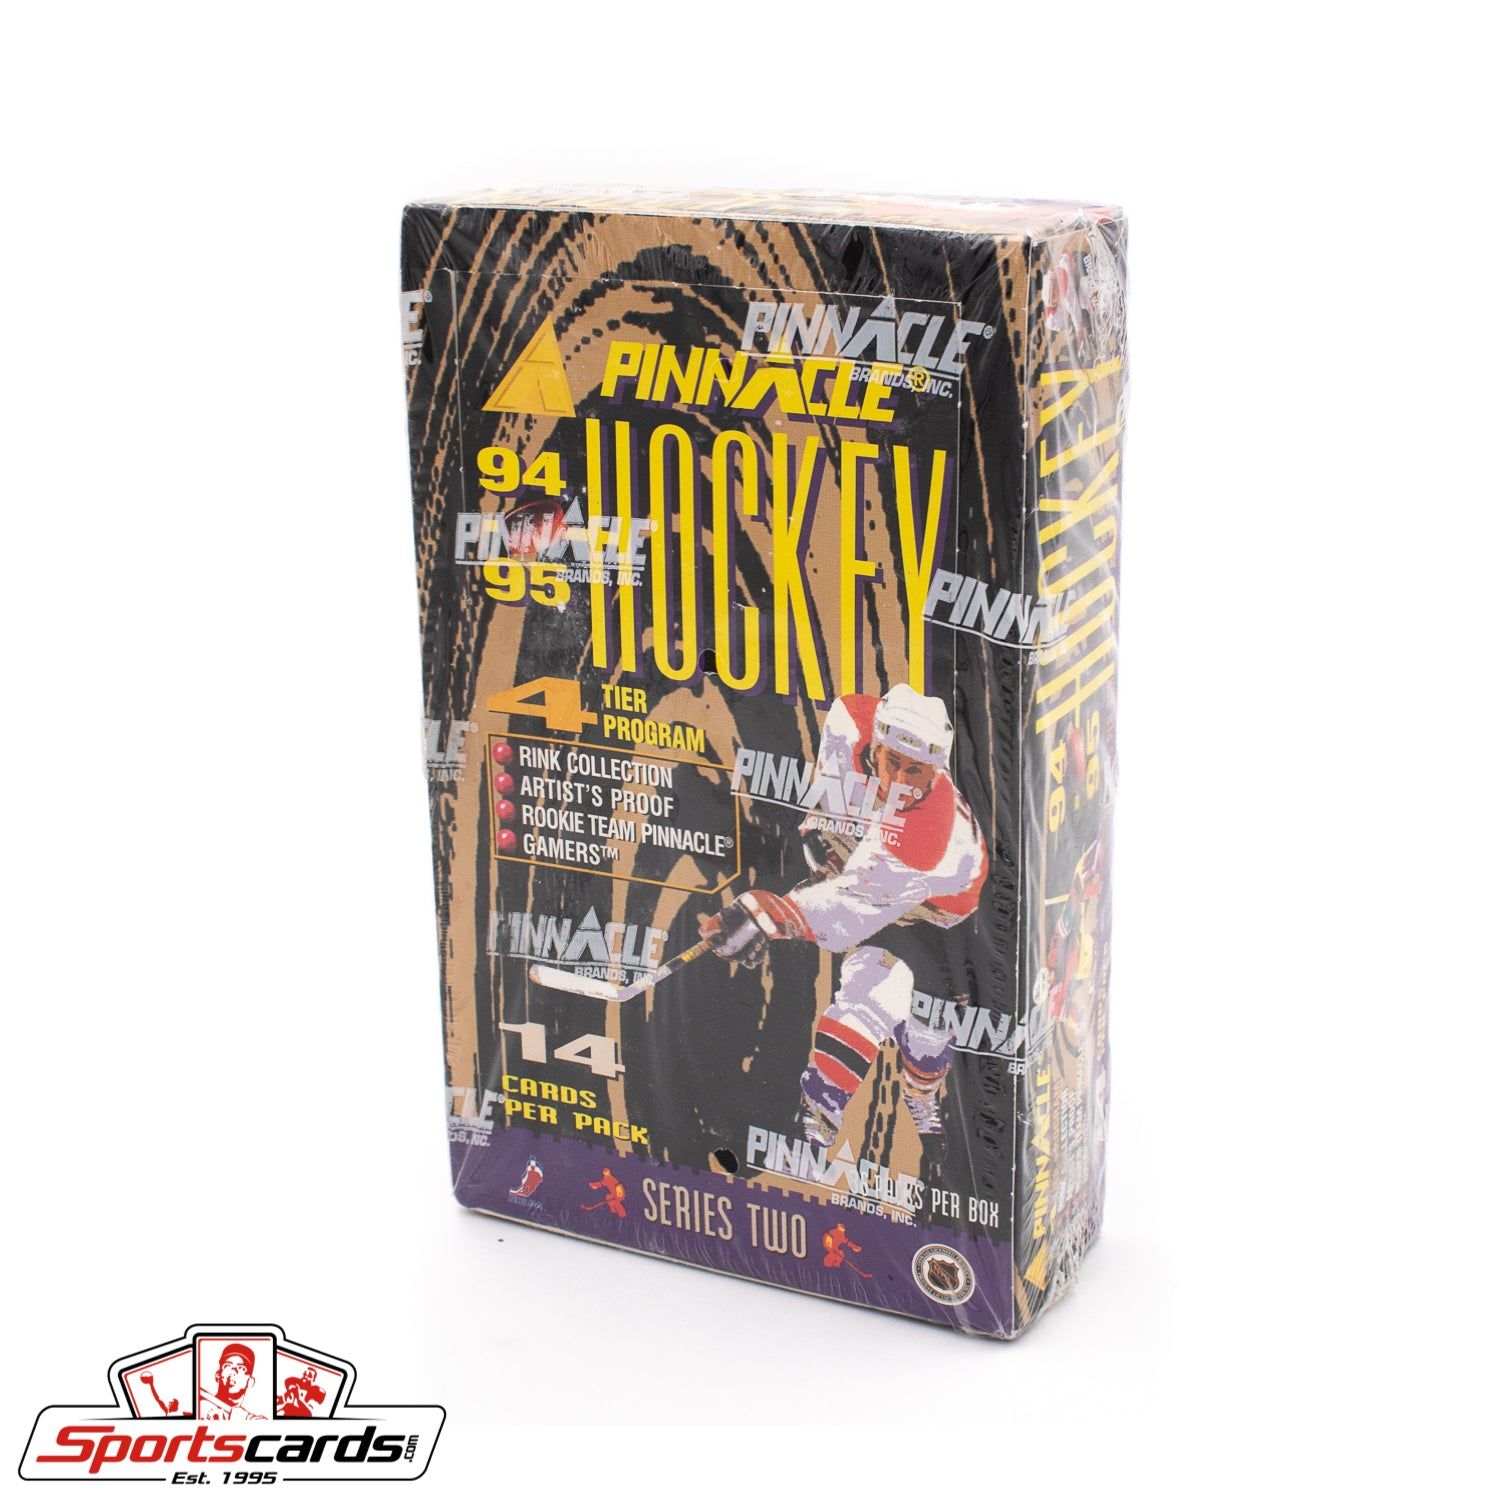 1994-95 Pinnacle Hockey Series 2 Factory Sealed Box